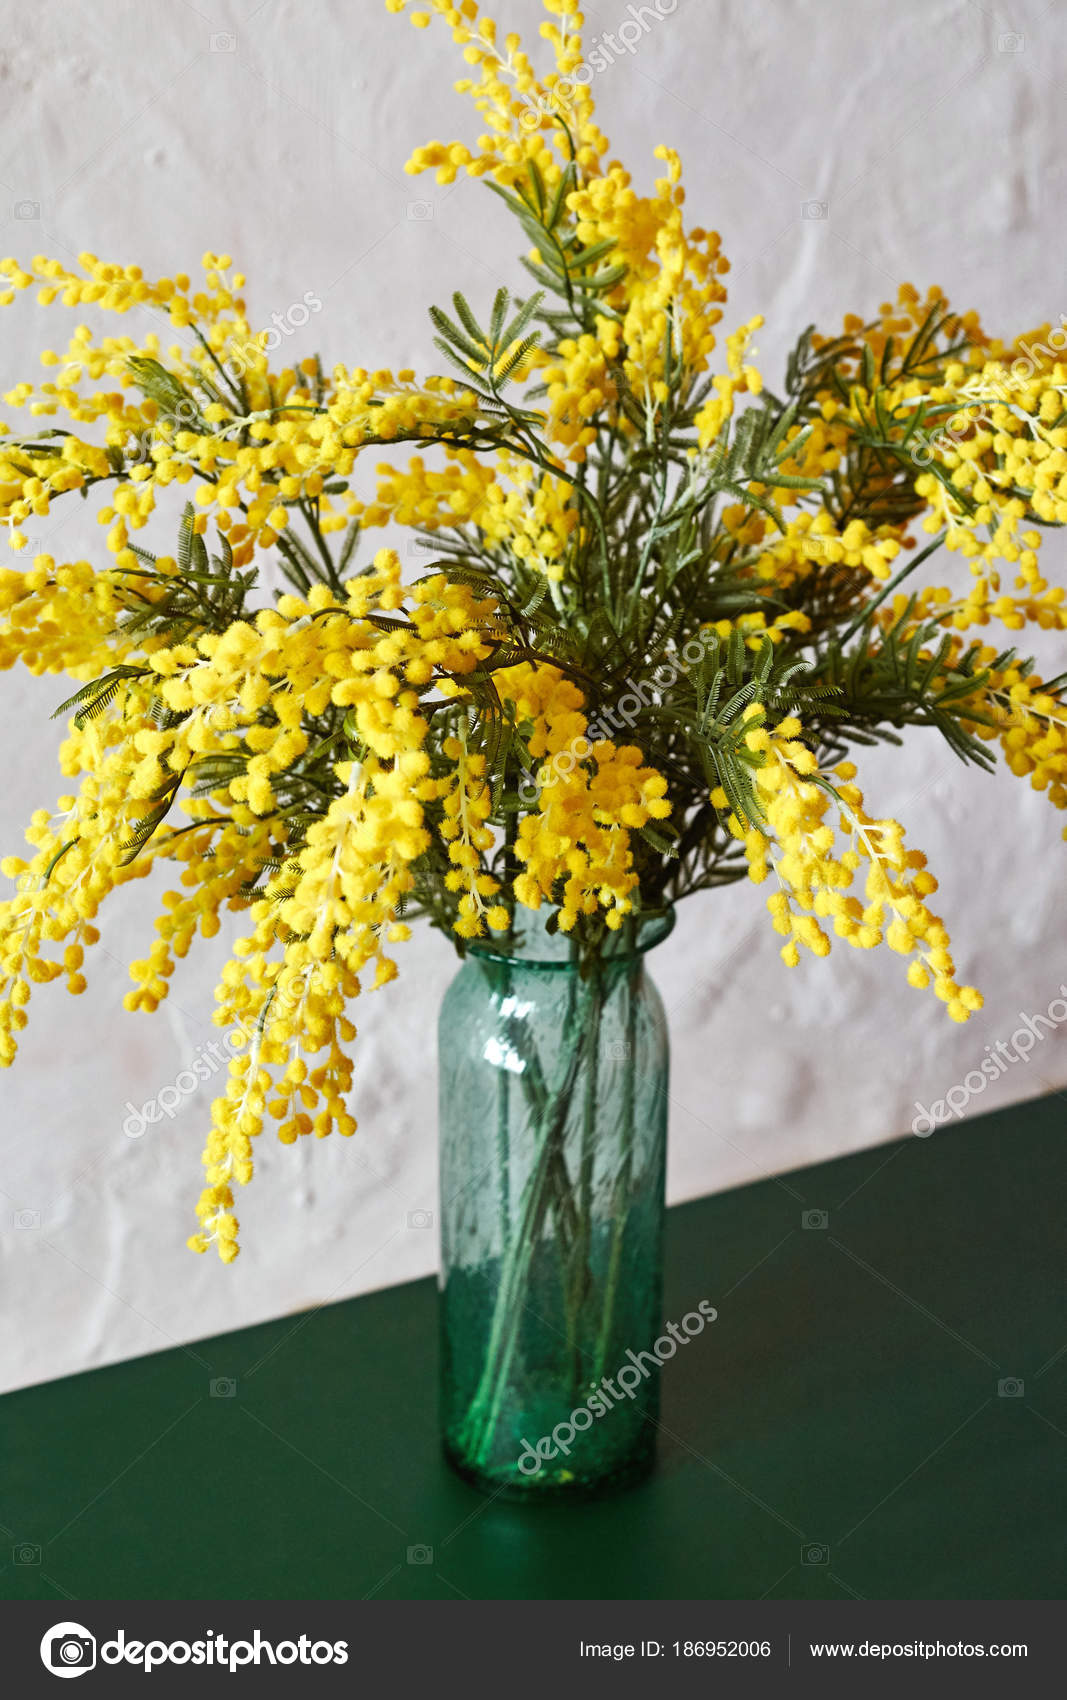 Mimosa Spring Flowers Vase Standing Green Table Bouquet Beautiful